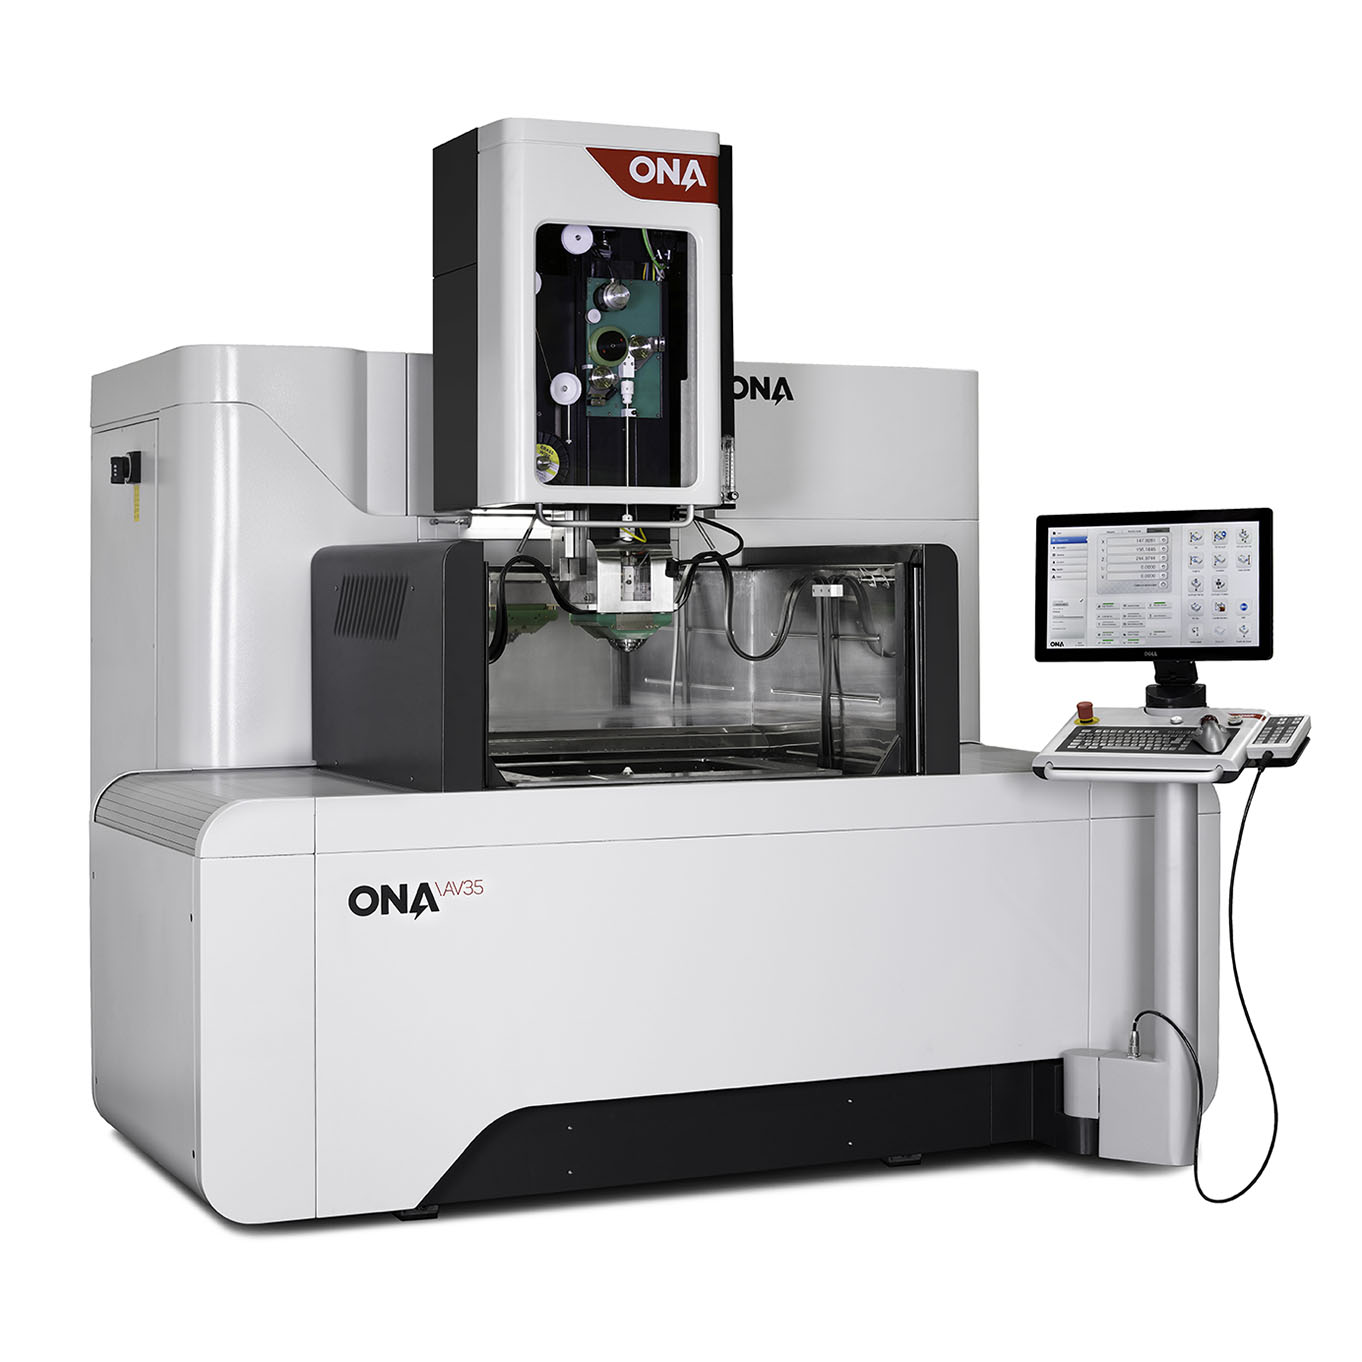 ONA COMPACT MACHINES